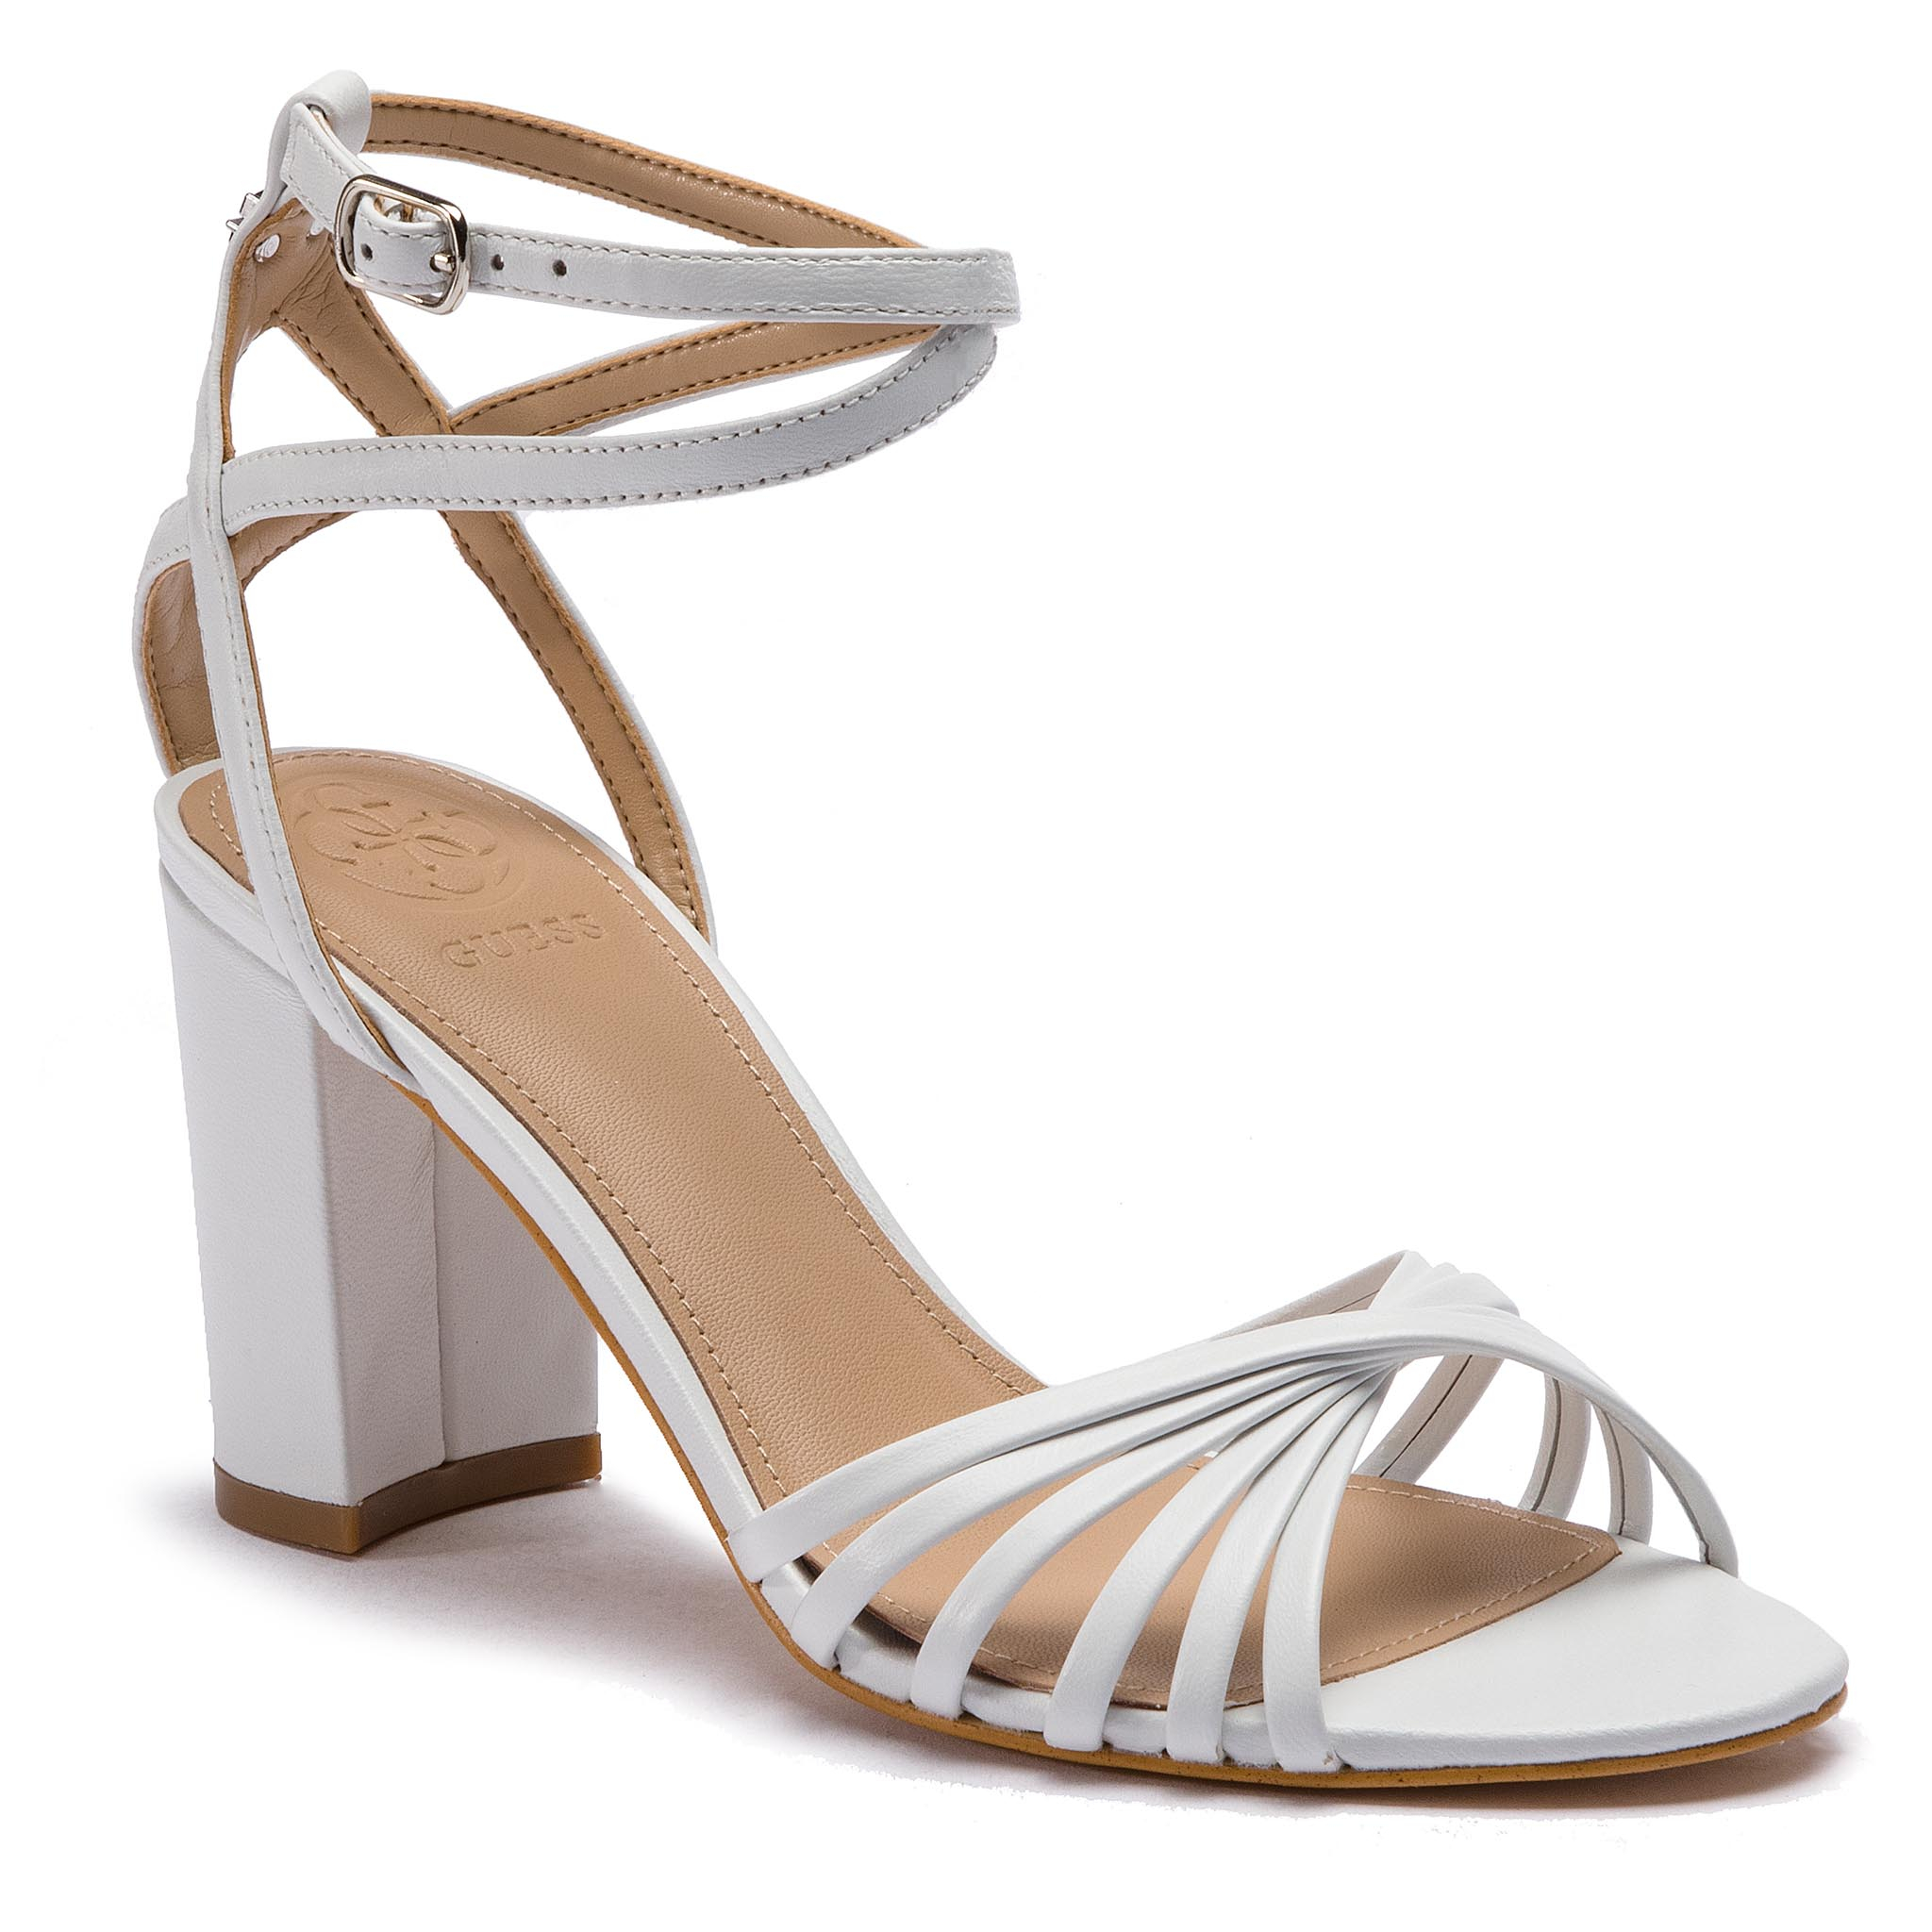 Sandale GUESS - Madesta FL6MAD LEA03 WHITE